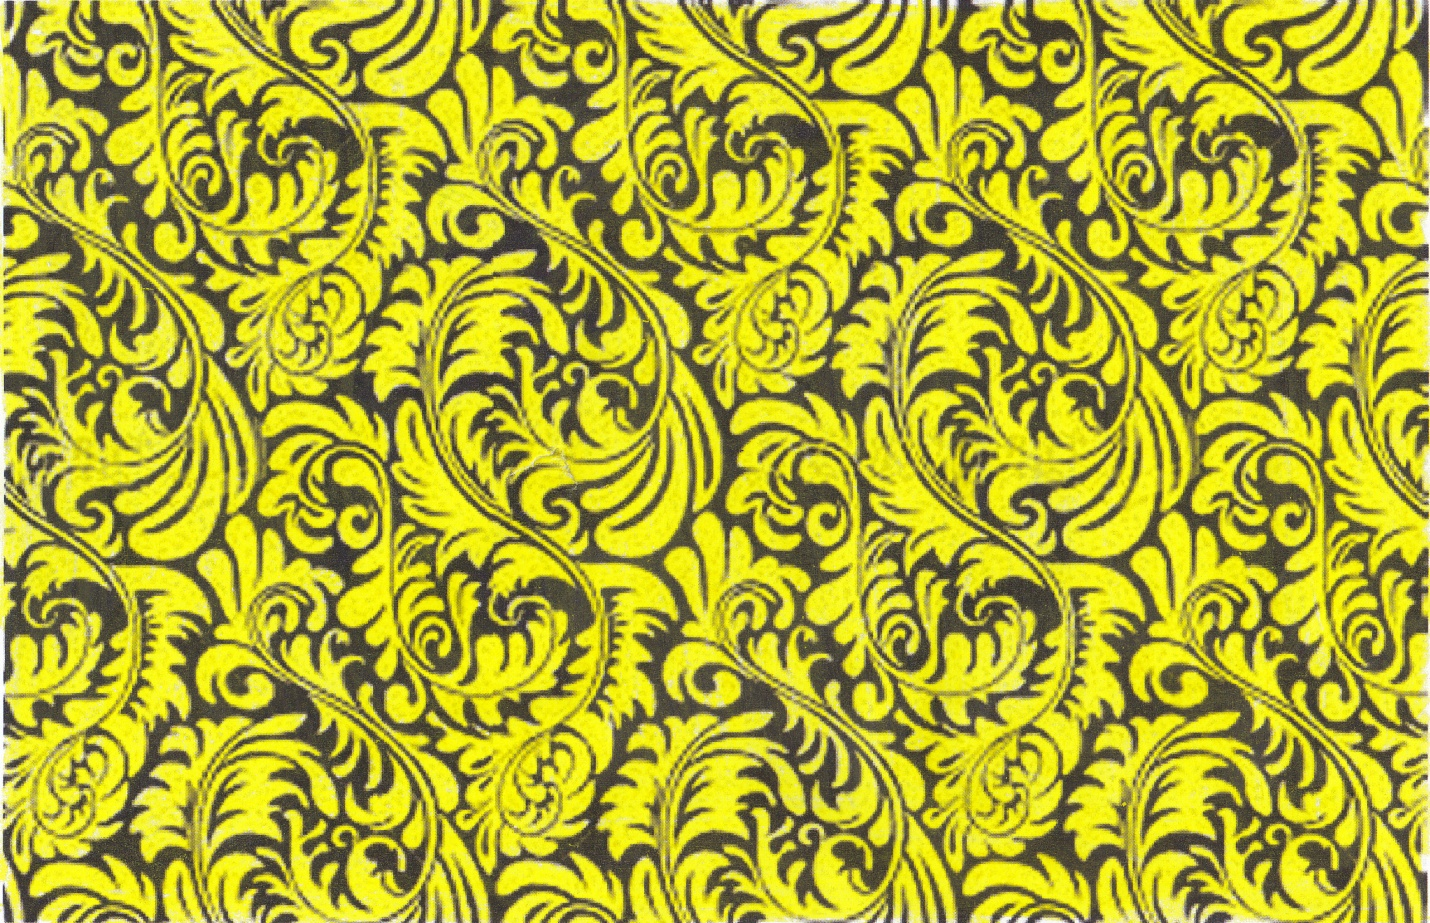 analysis essay the yellow wallpaper